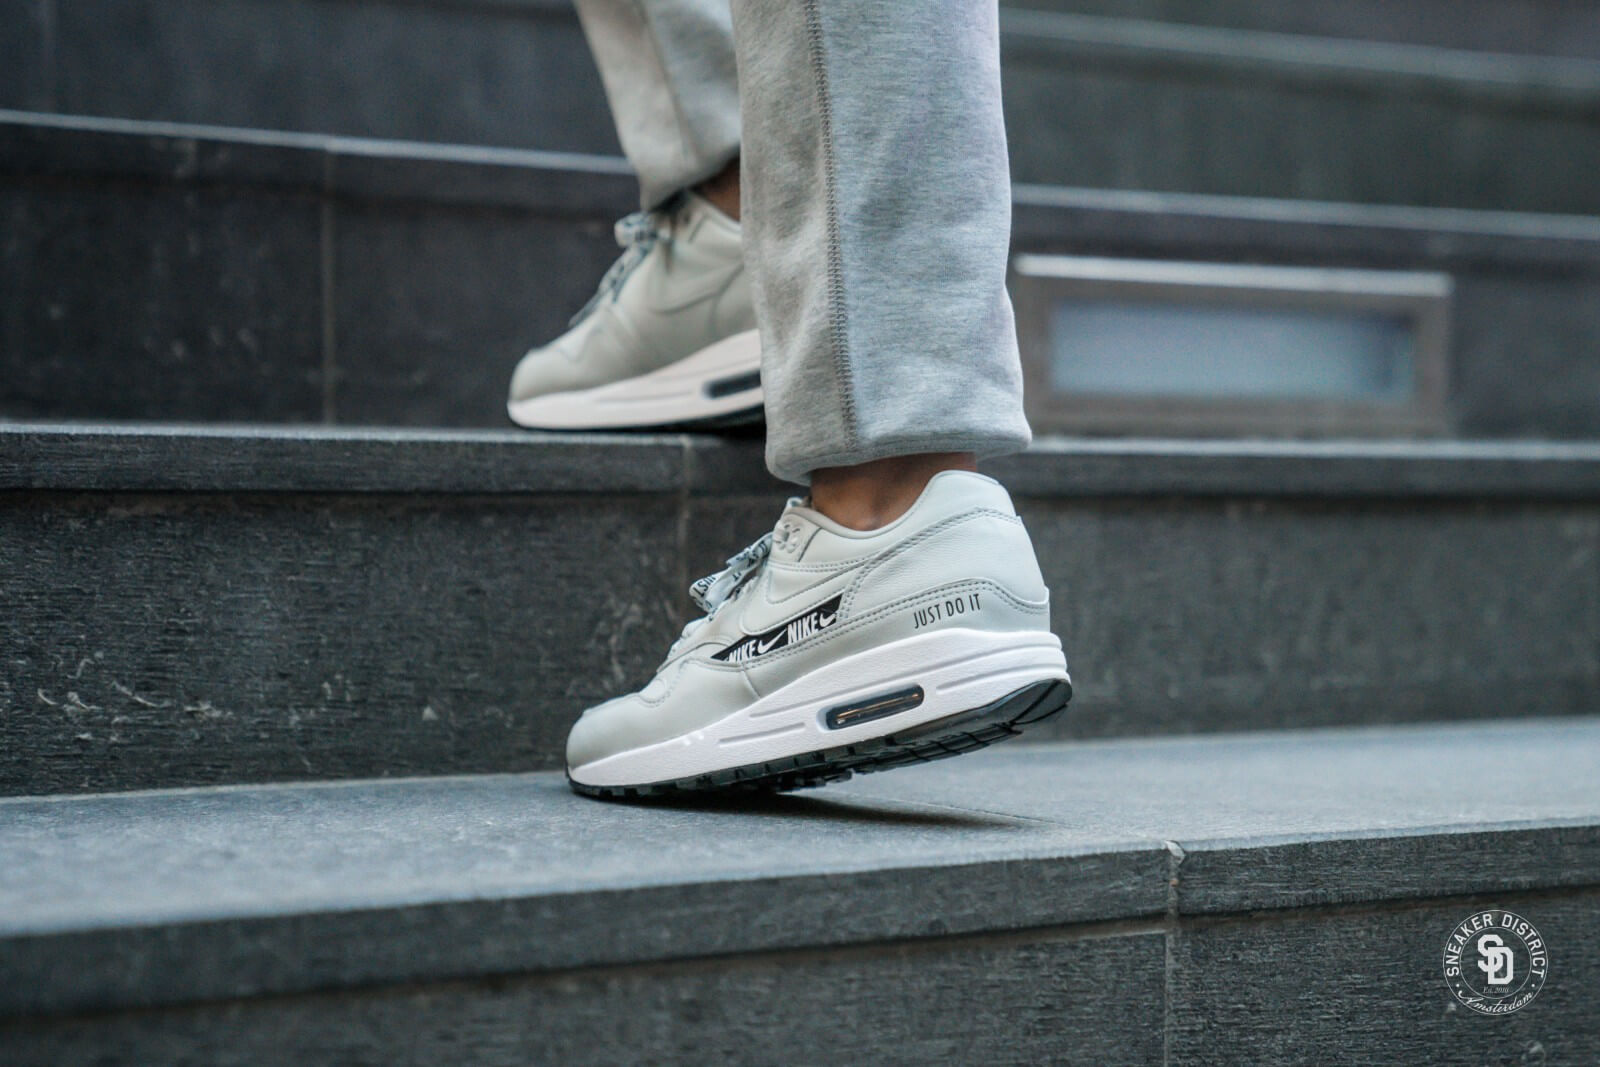 Nike Women's Air Max 1 SE Light Silver/Black-White